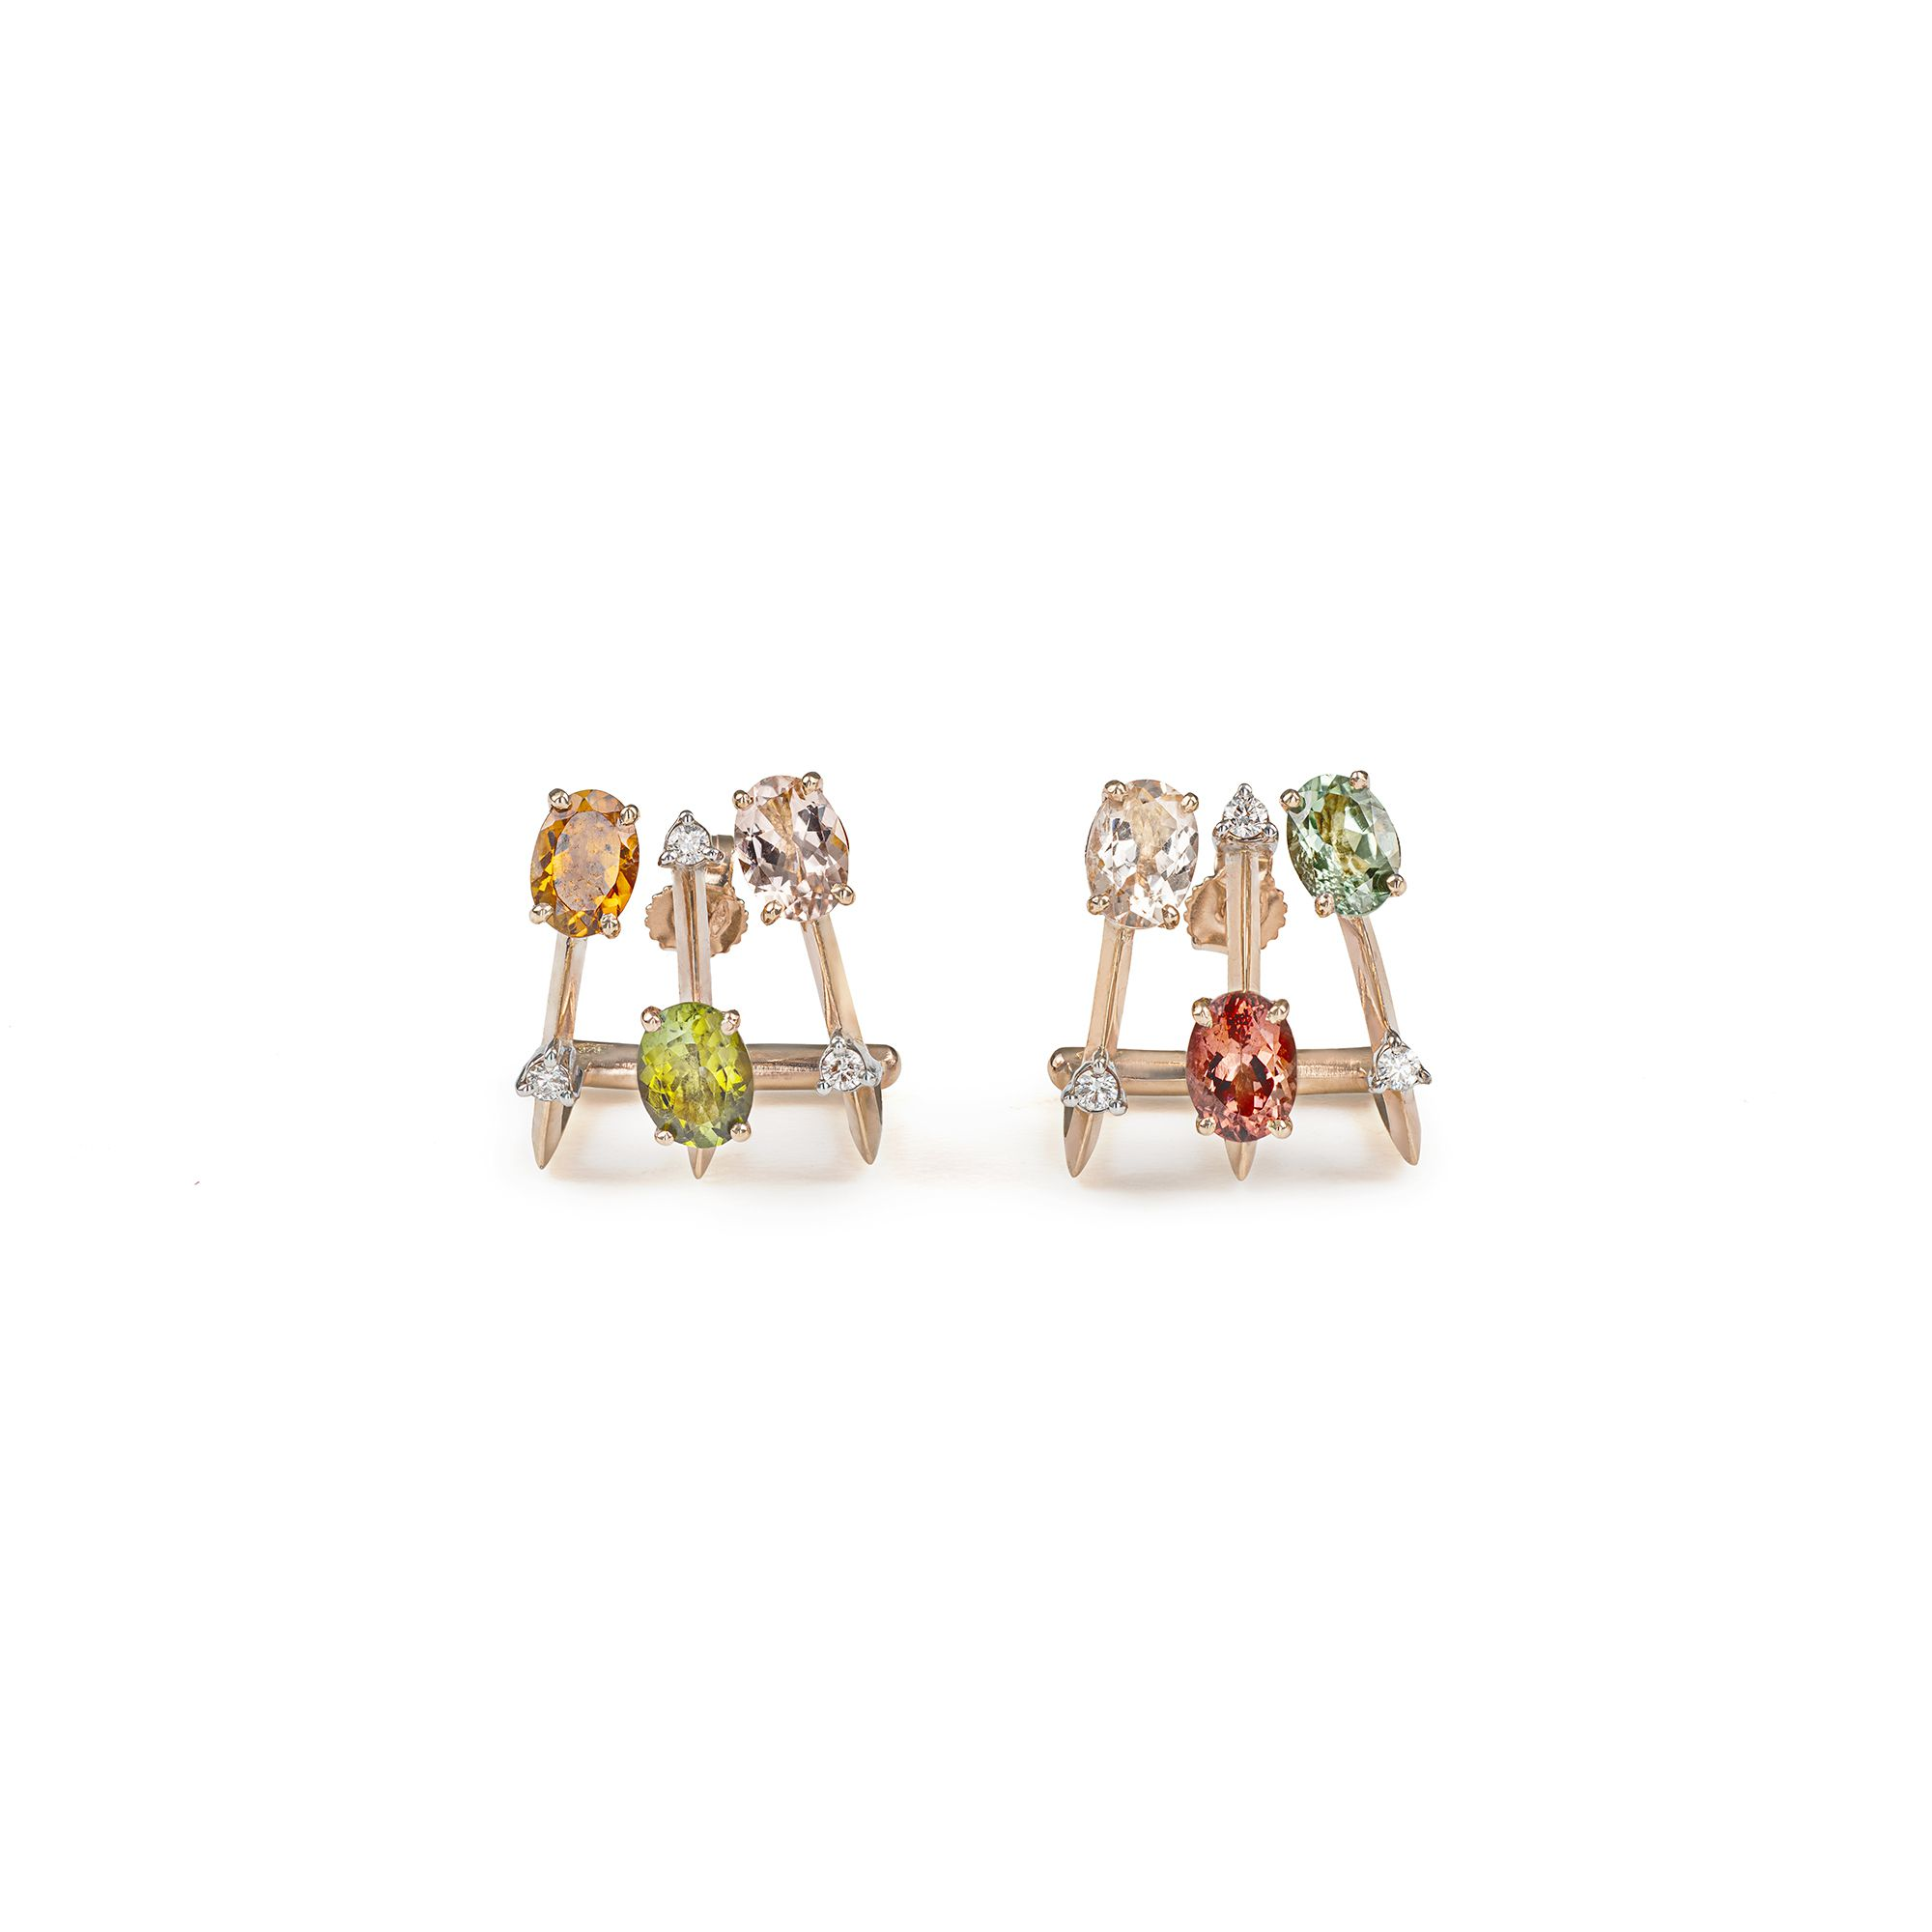 'Balance' 3 elements earrings with tourmalines Earrings in rose gold, tourmalines and diamonds